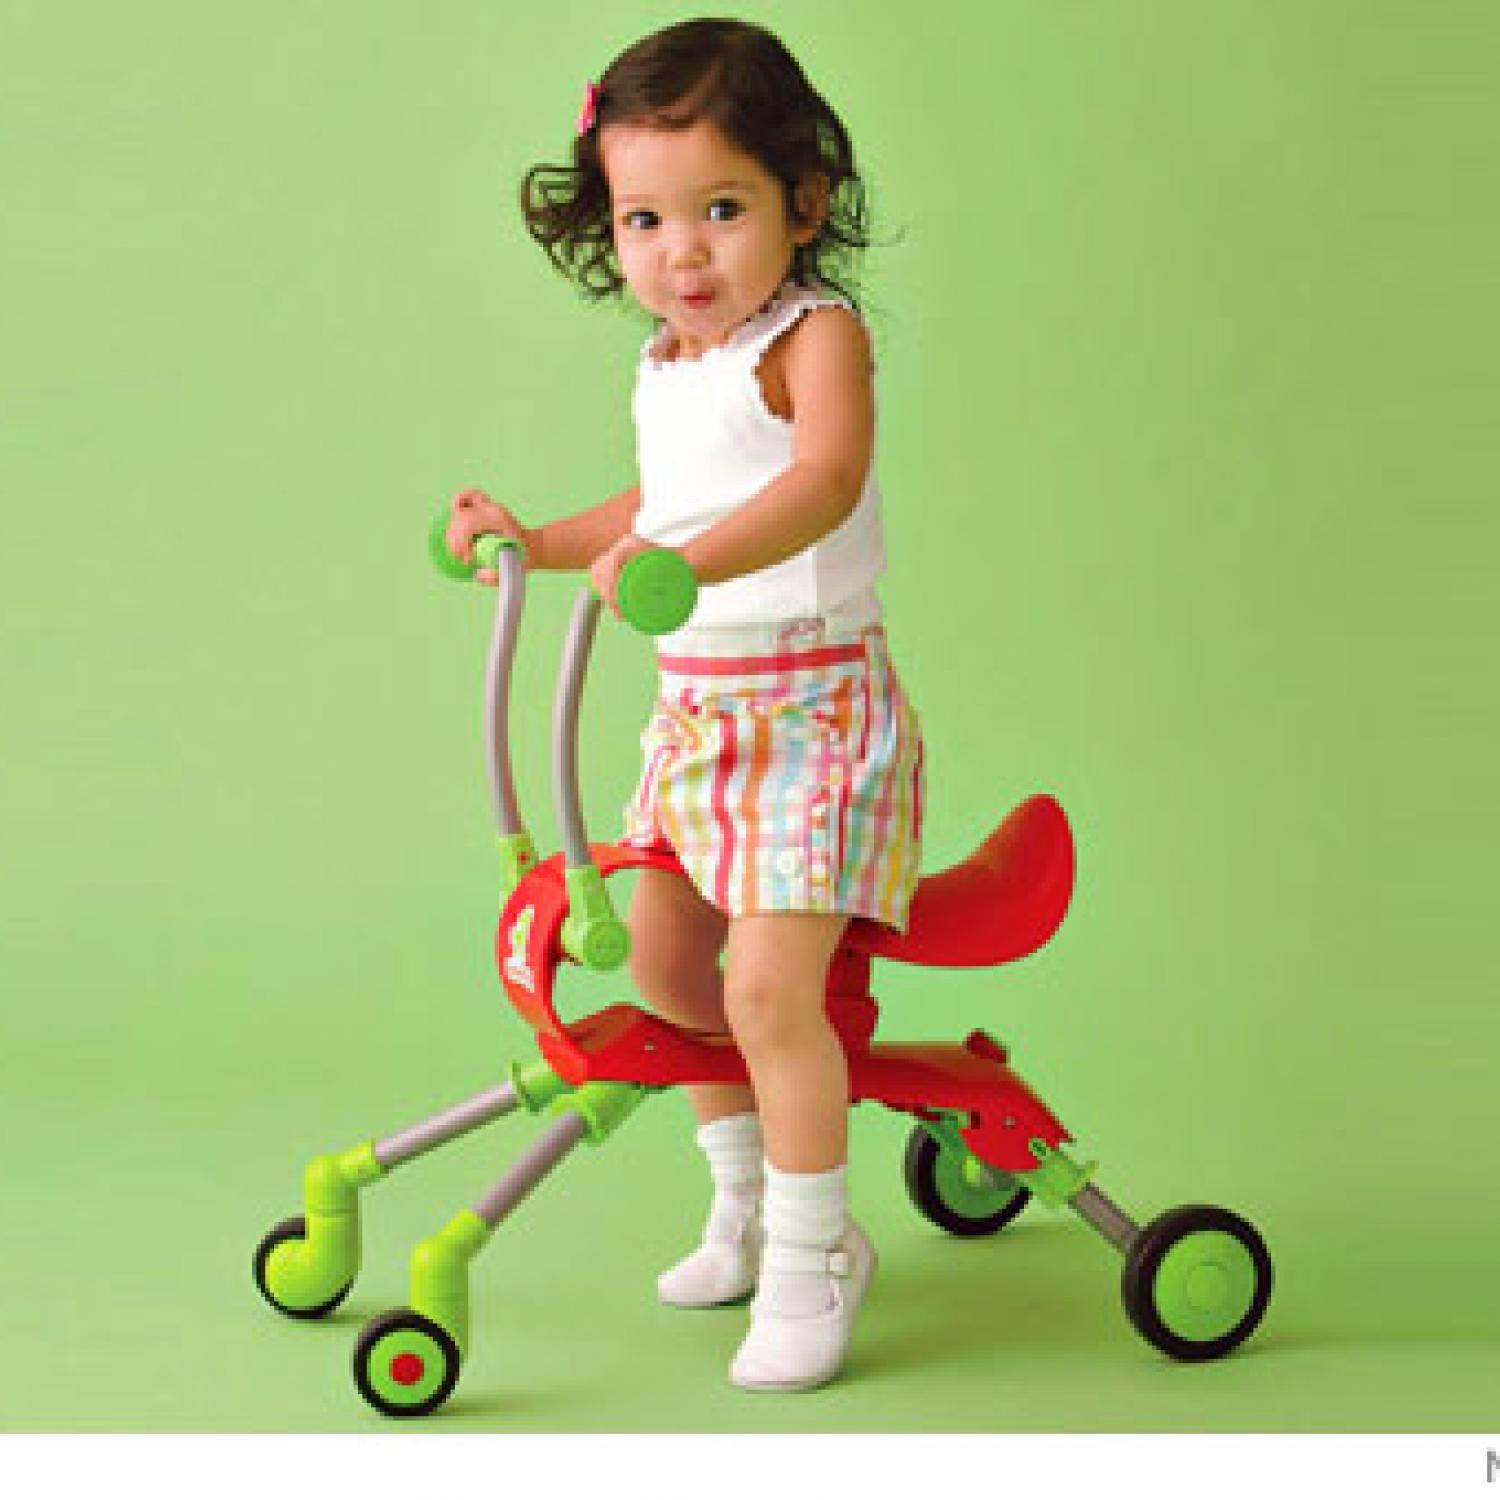 Outdoor Toys For Girls : Hot outdoor toys parenting